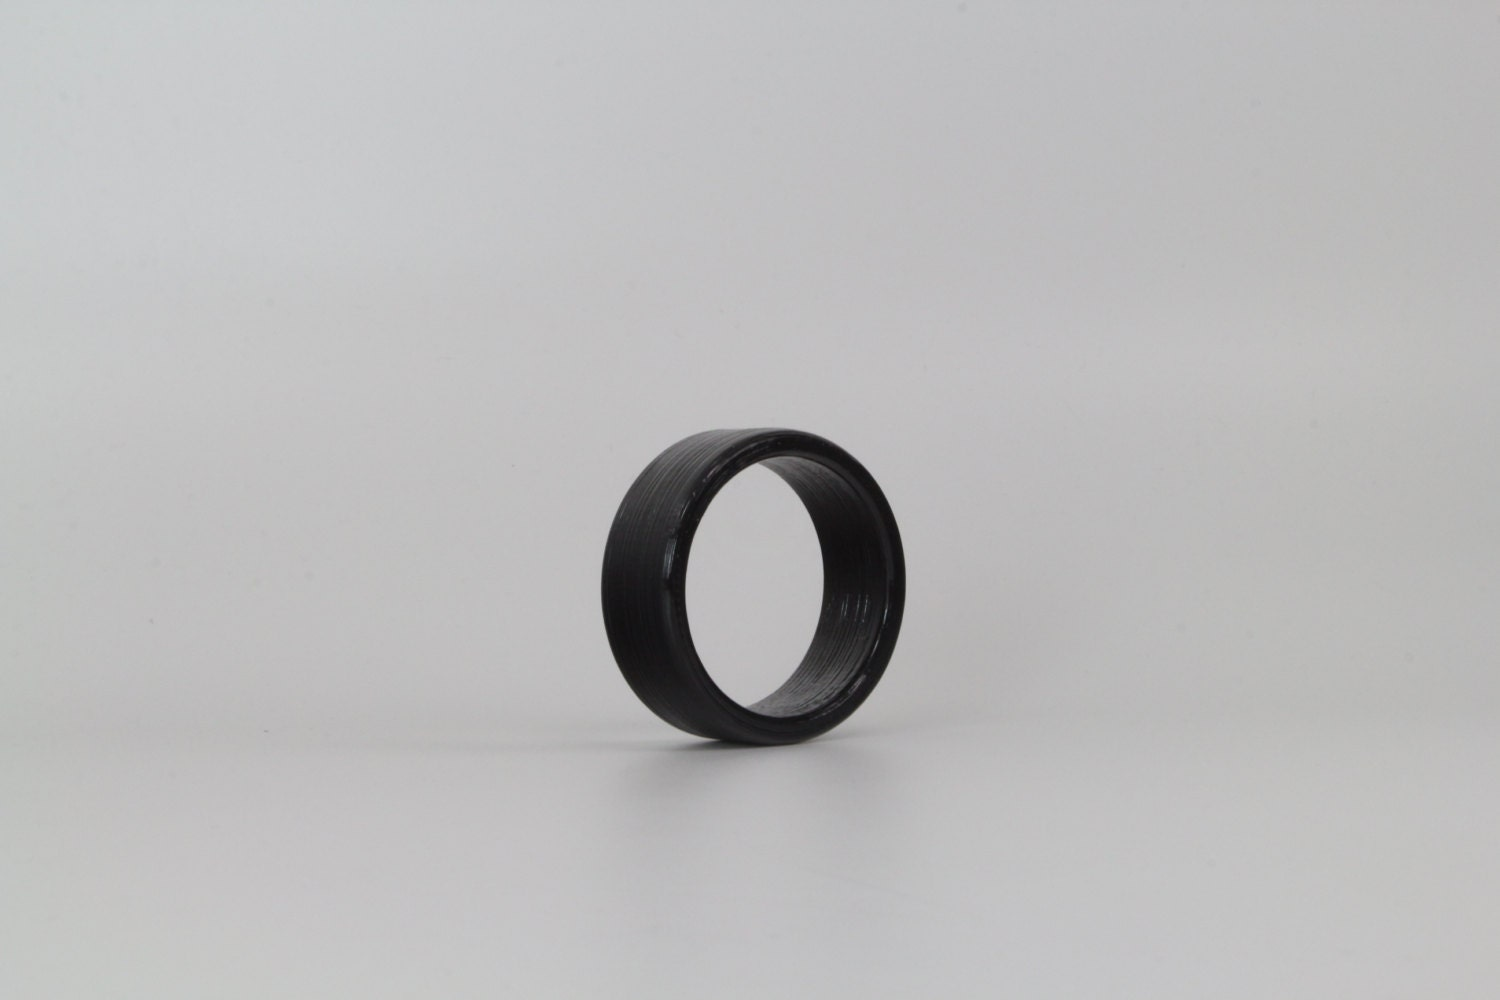 Decorative Cock Ring Leluv 175 Inch 3d Printed Liquorice Cock Ring Male Erection